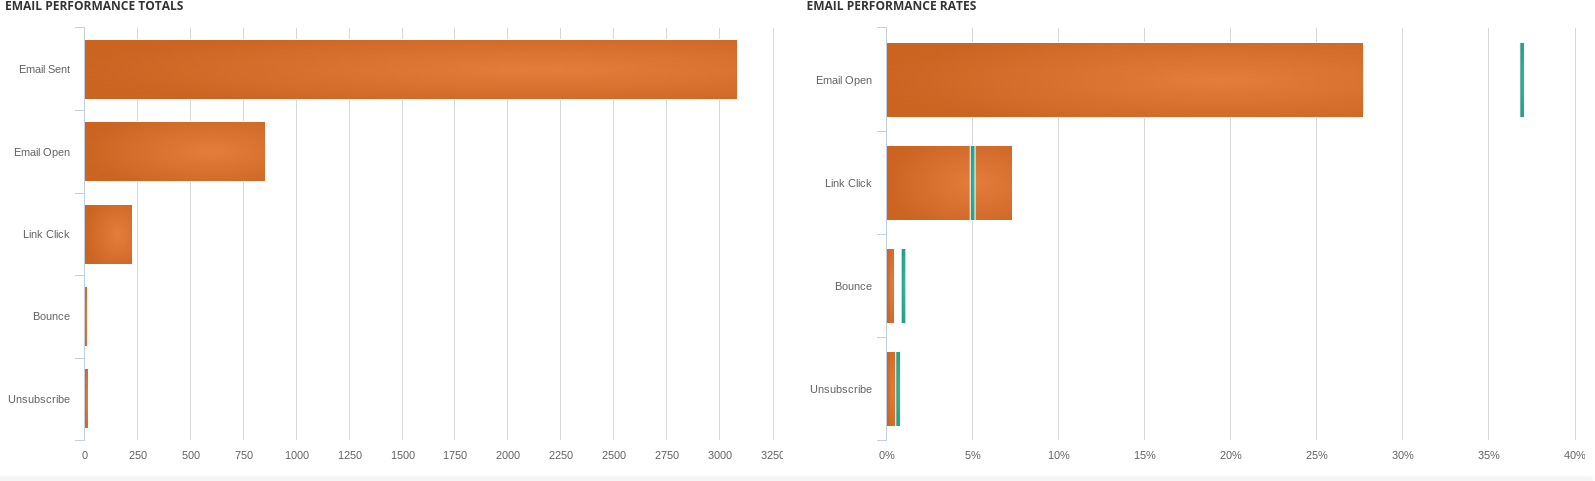 email performance rates and totals